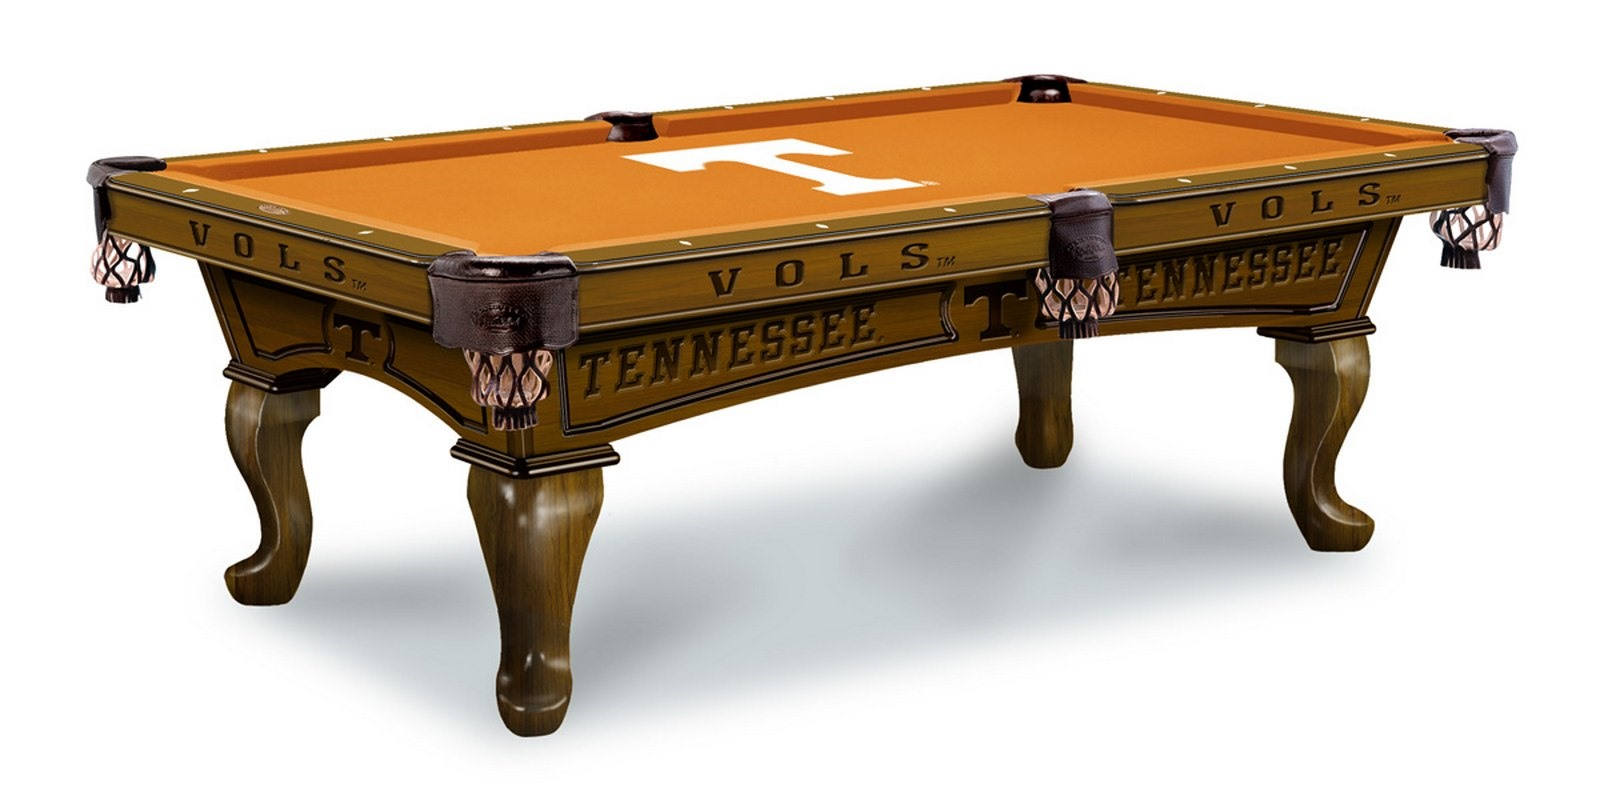 University Of Tennessee Pool Table Made In USA Manufactured By - Pool table movers knoxville tn